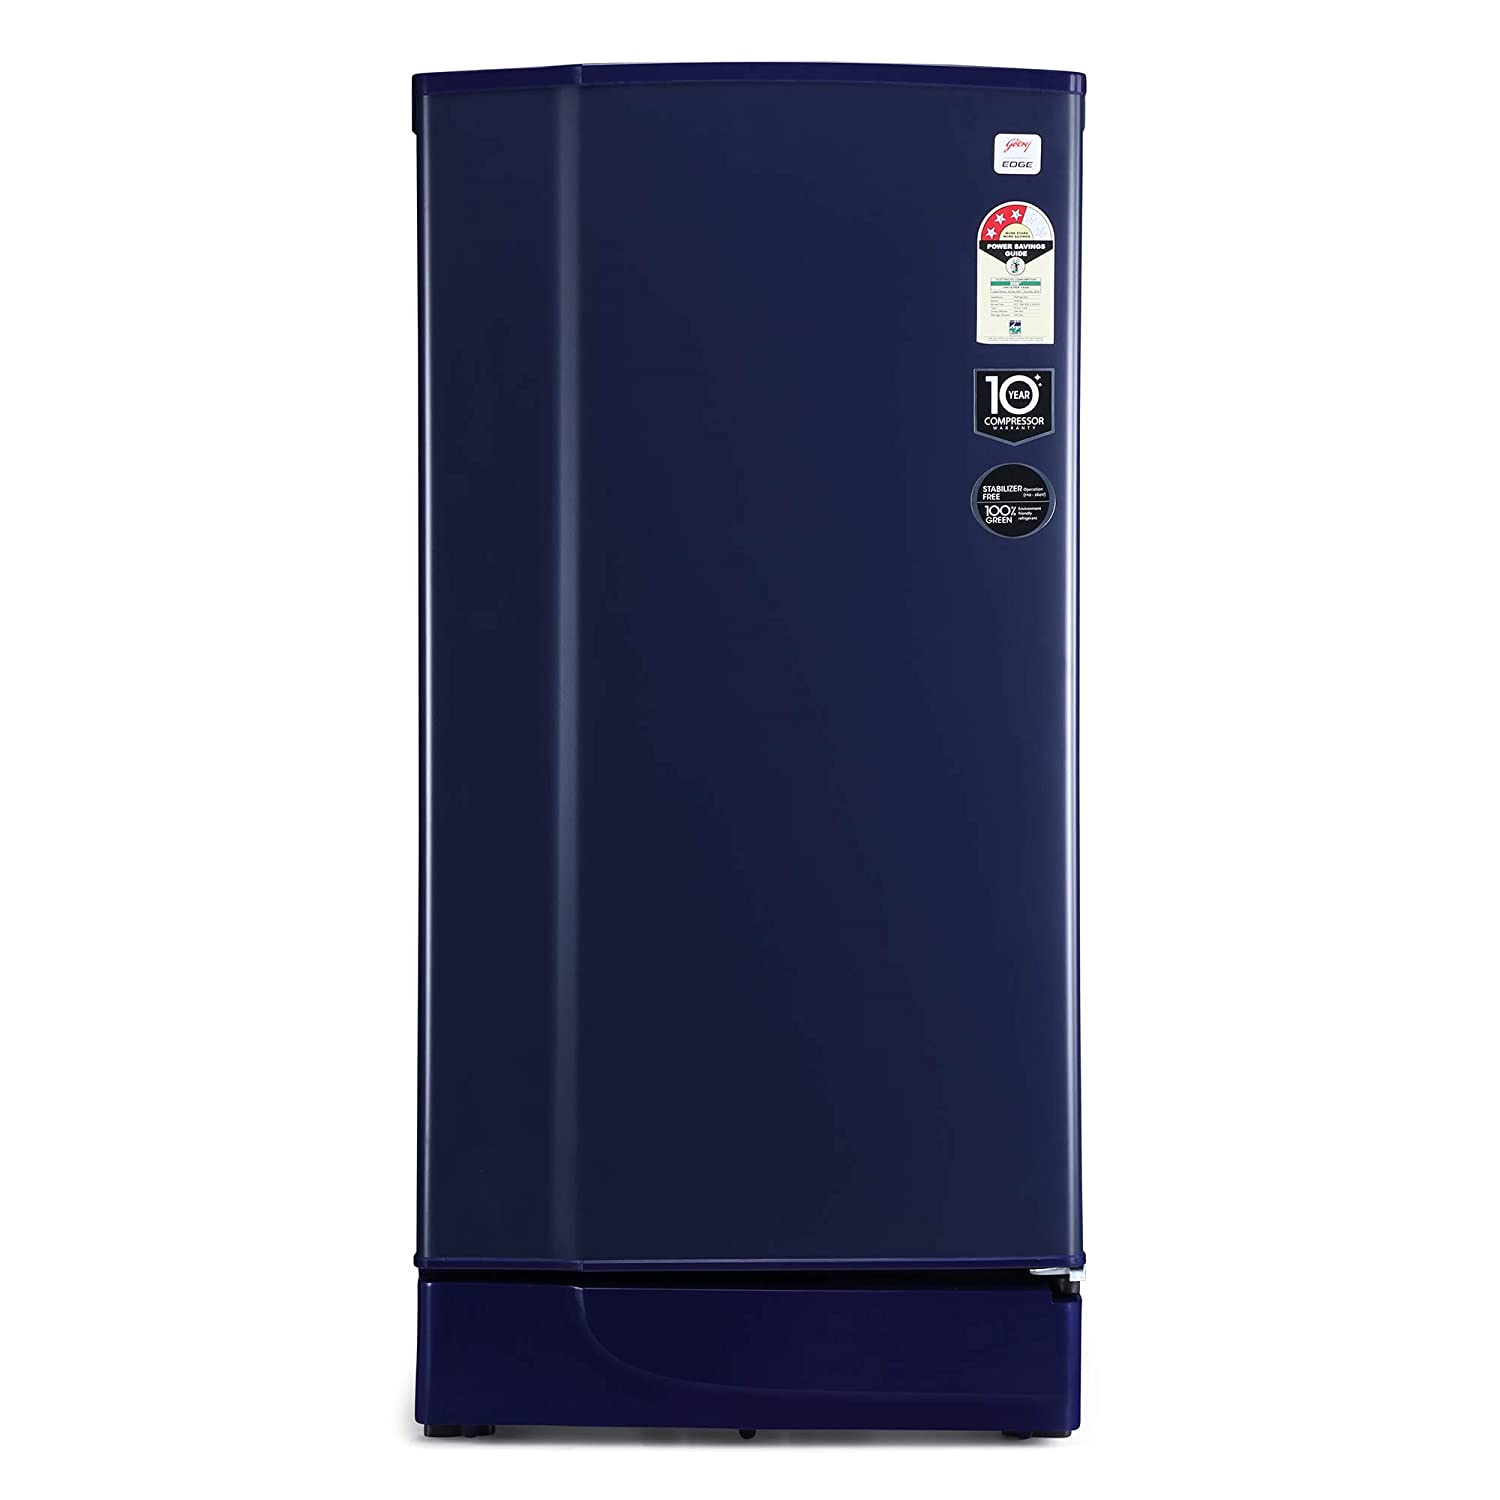 Godrej 190L 3 Star Direct-Cool Single-Door Refrigerator